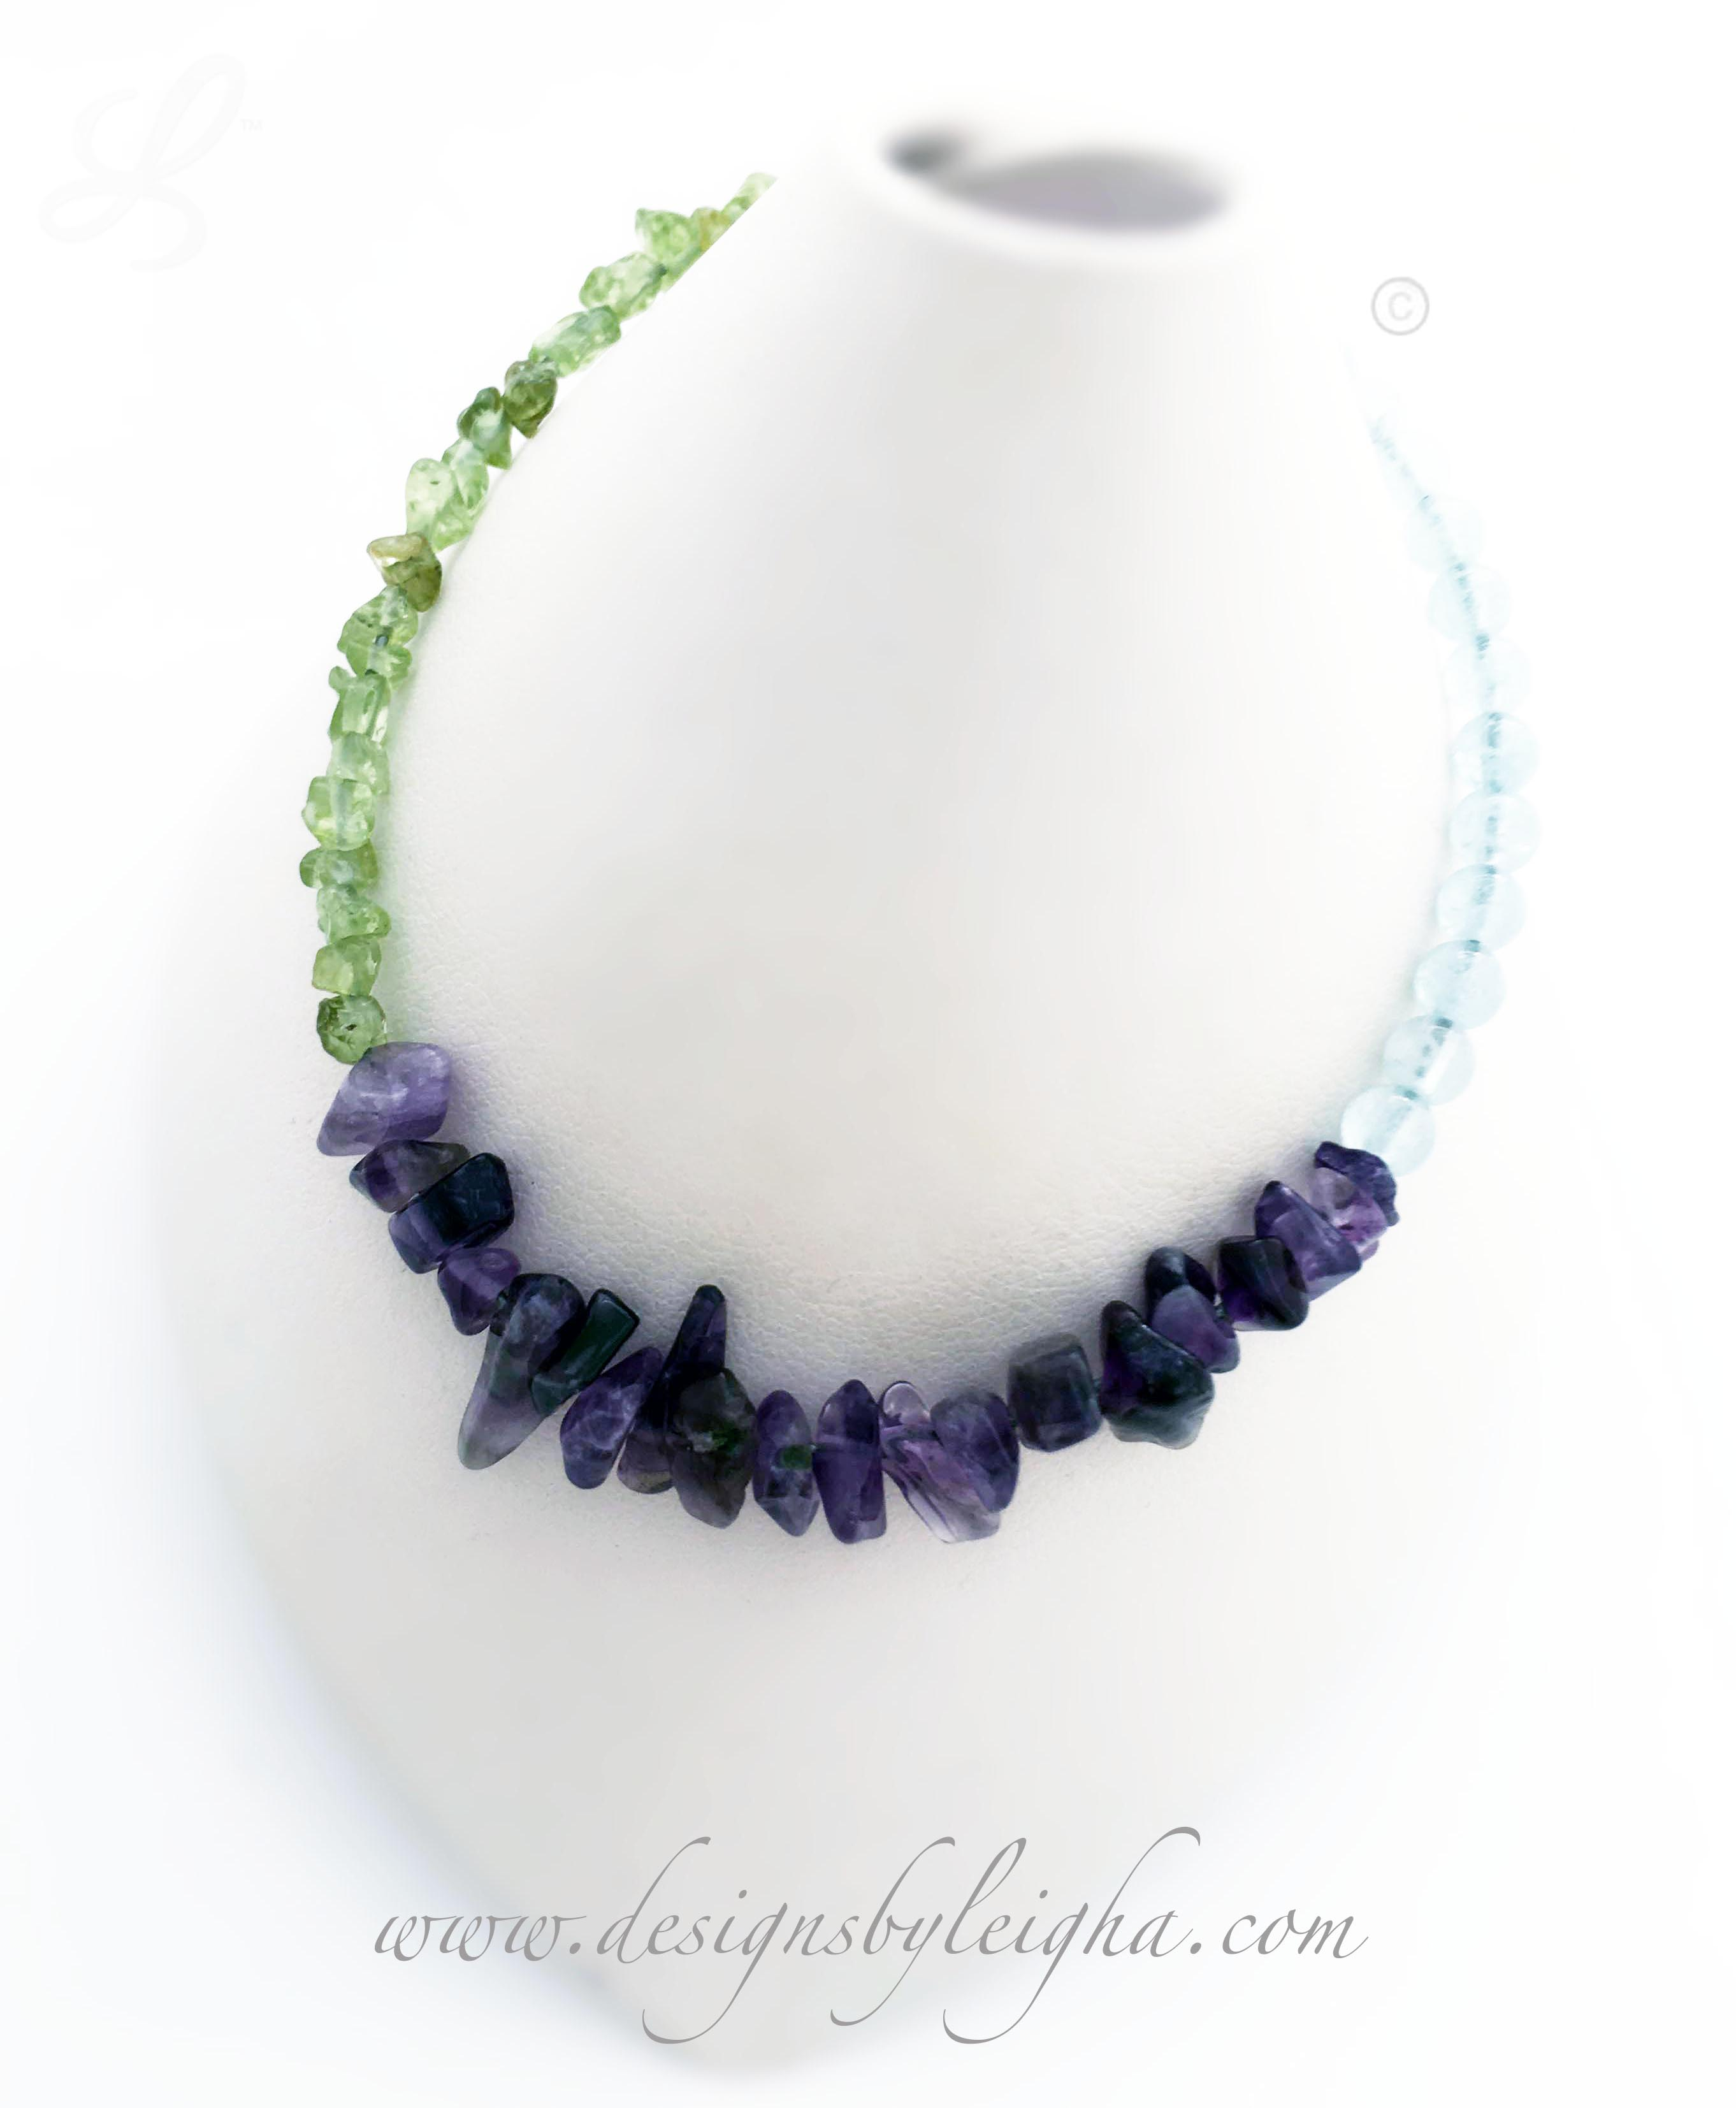 DBL-BB-19  This is a real gemstone bracelet with Amethyst, Aquamarine and Peridot beads.